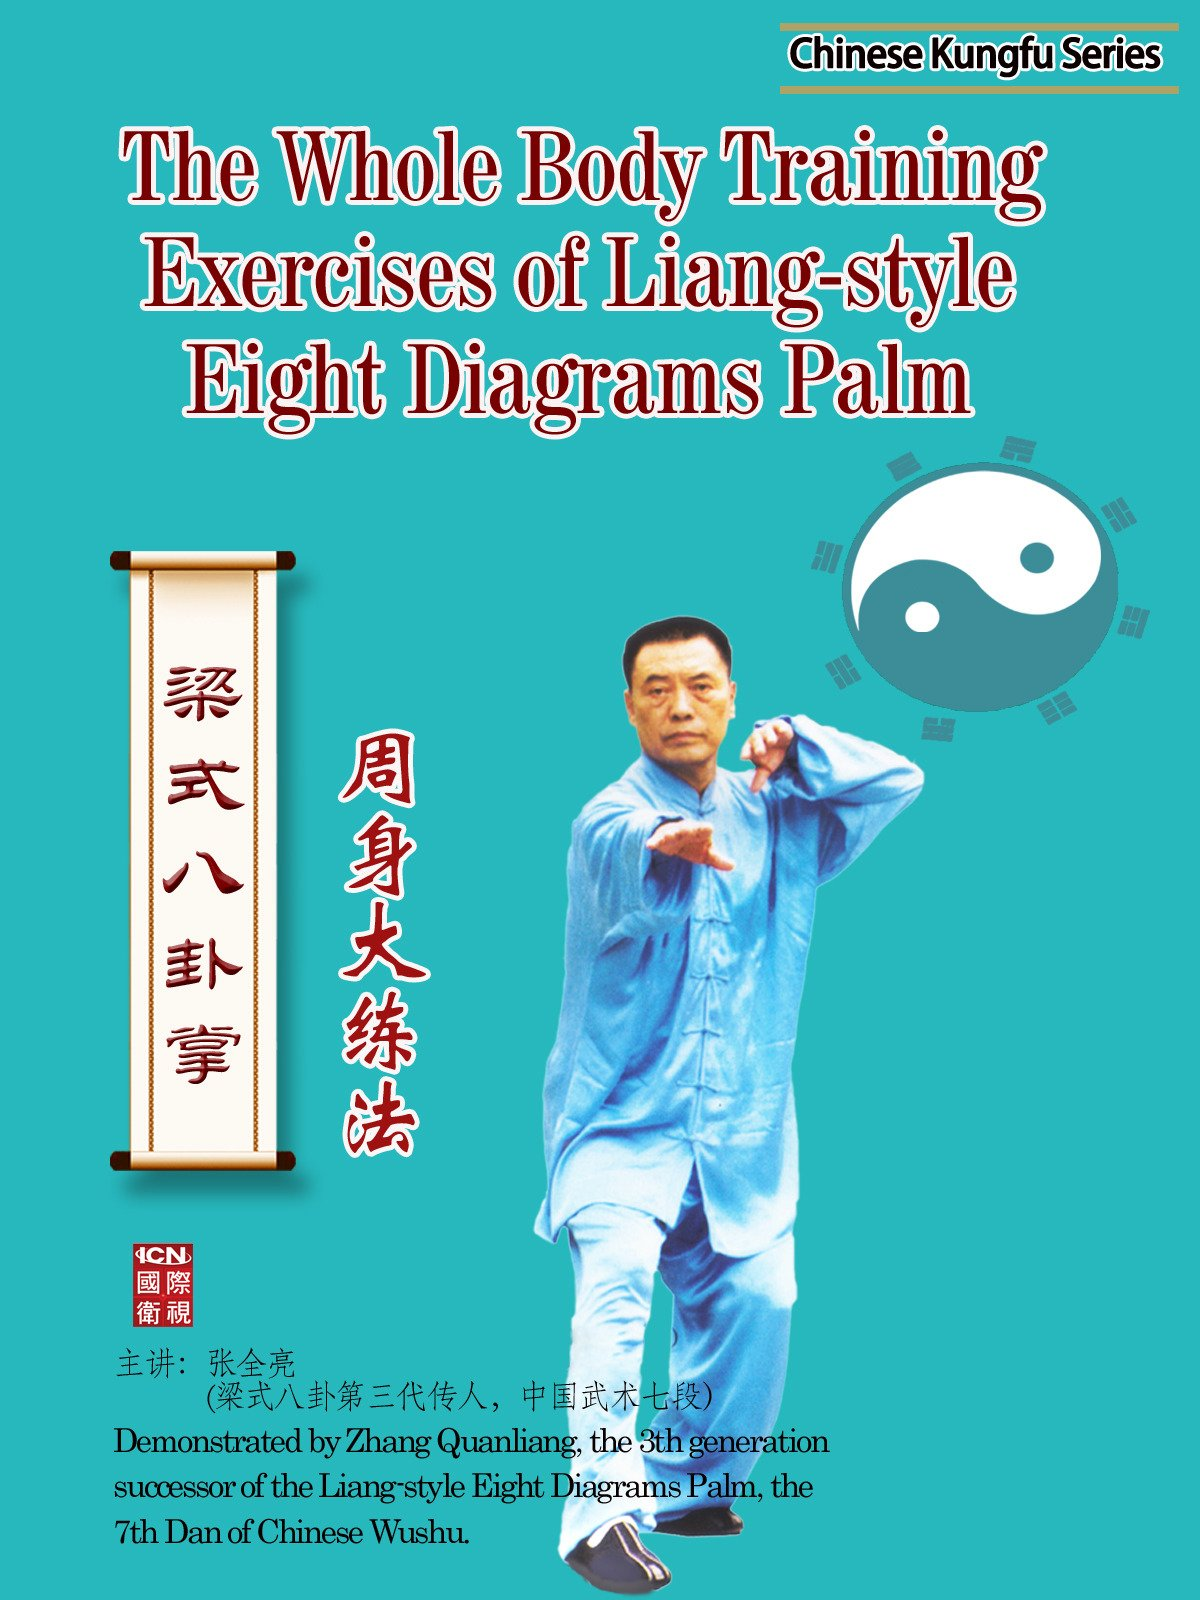 The Whole Body Training Exercises of Liang-style Eight Diagrams Palm(Demonstrated by Zhang Quanliang)